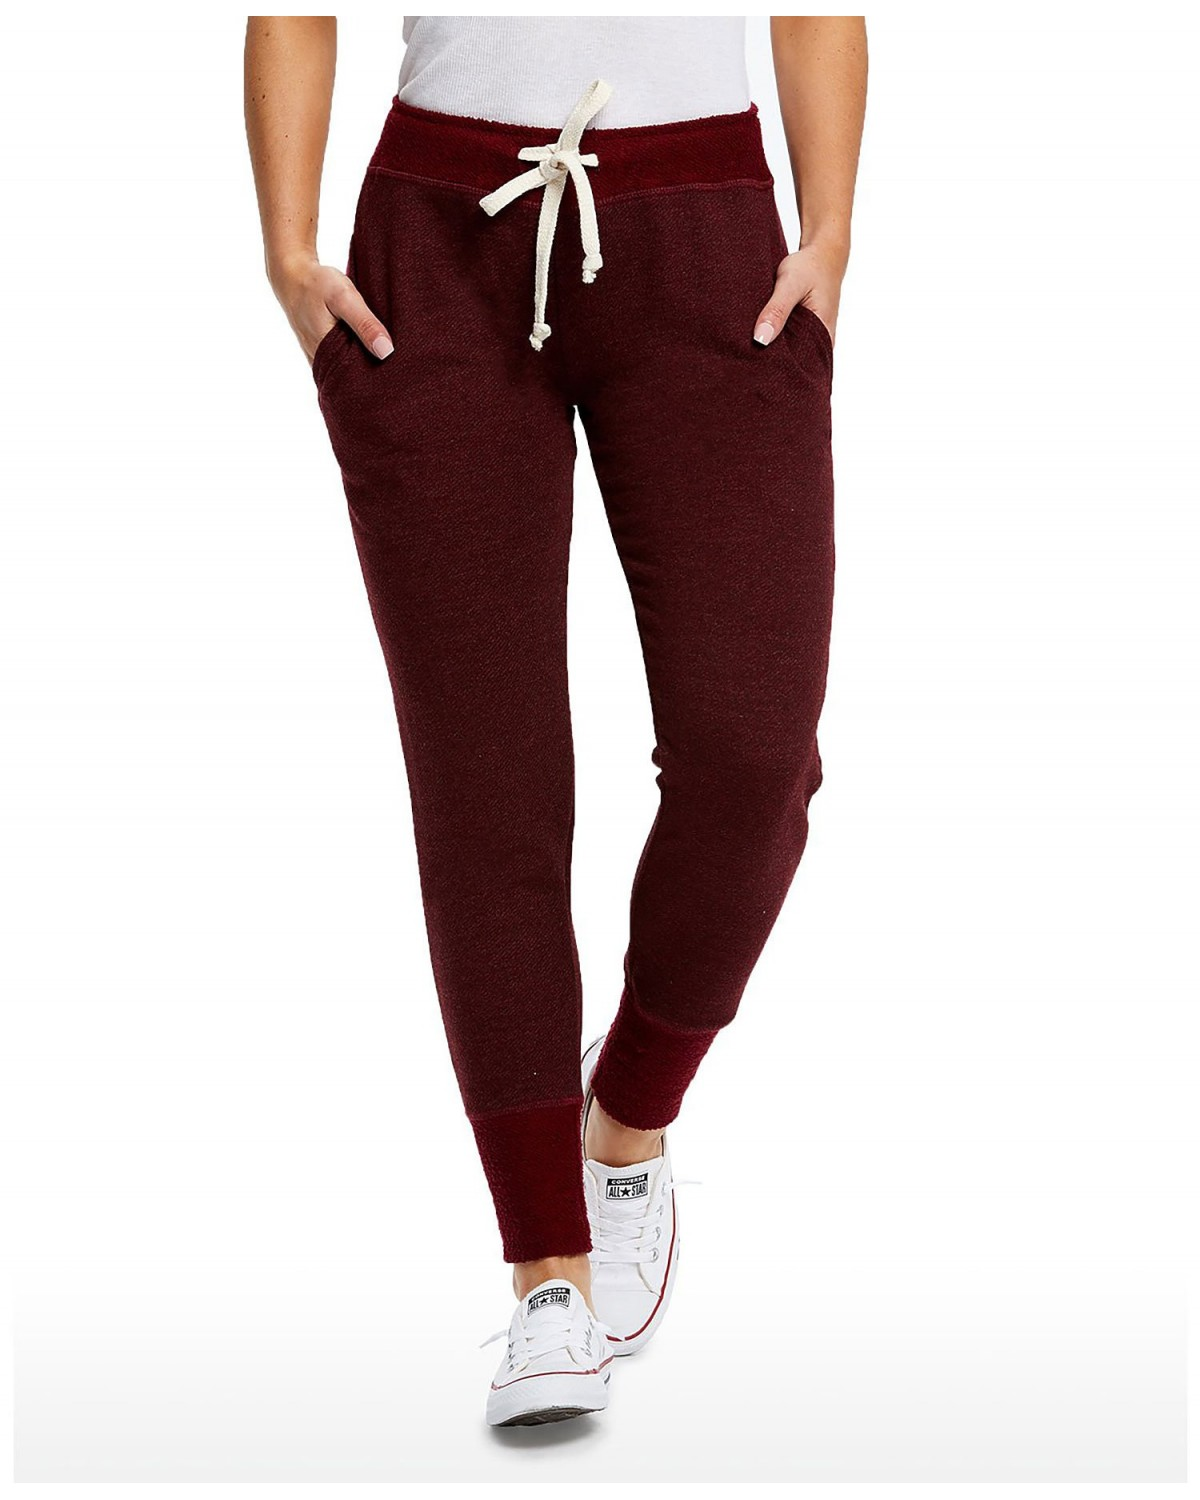 AAHVT495W American Apparel